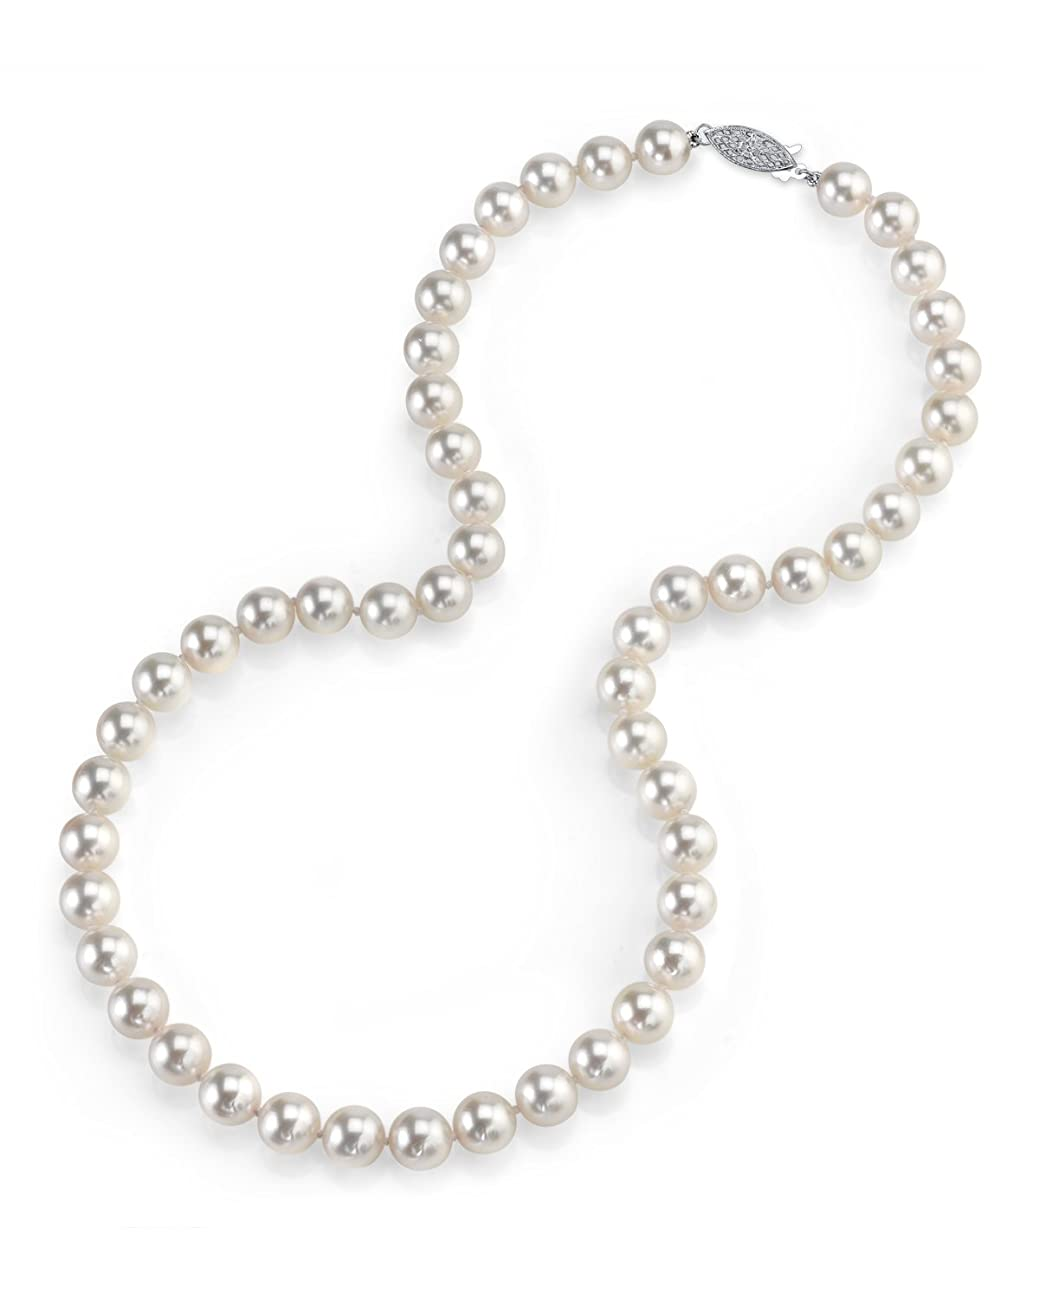 THE PEARL SOURCE 14K Gold AAA Quality Round Genuine White Japanese Akoya Saltwater Cultured Pearl Necklace in 18